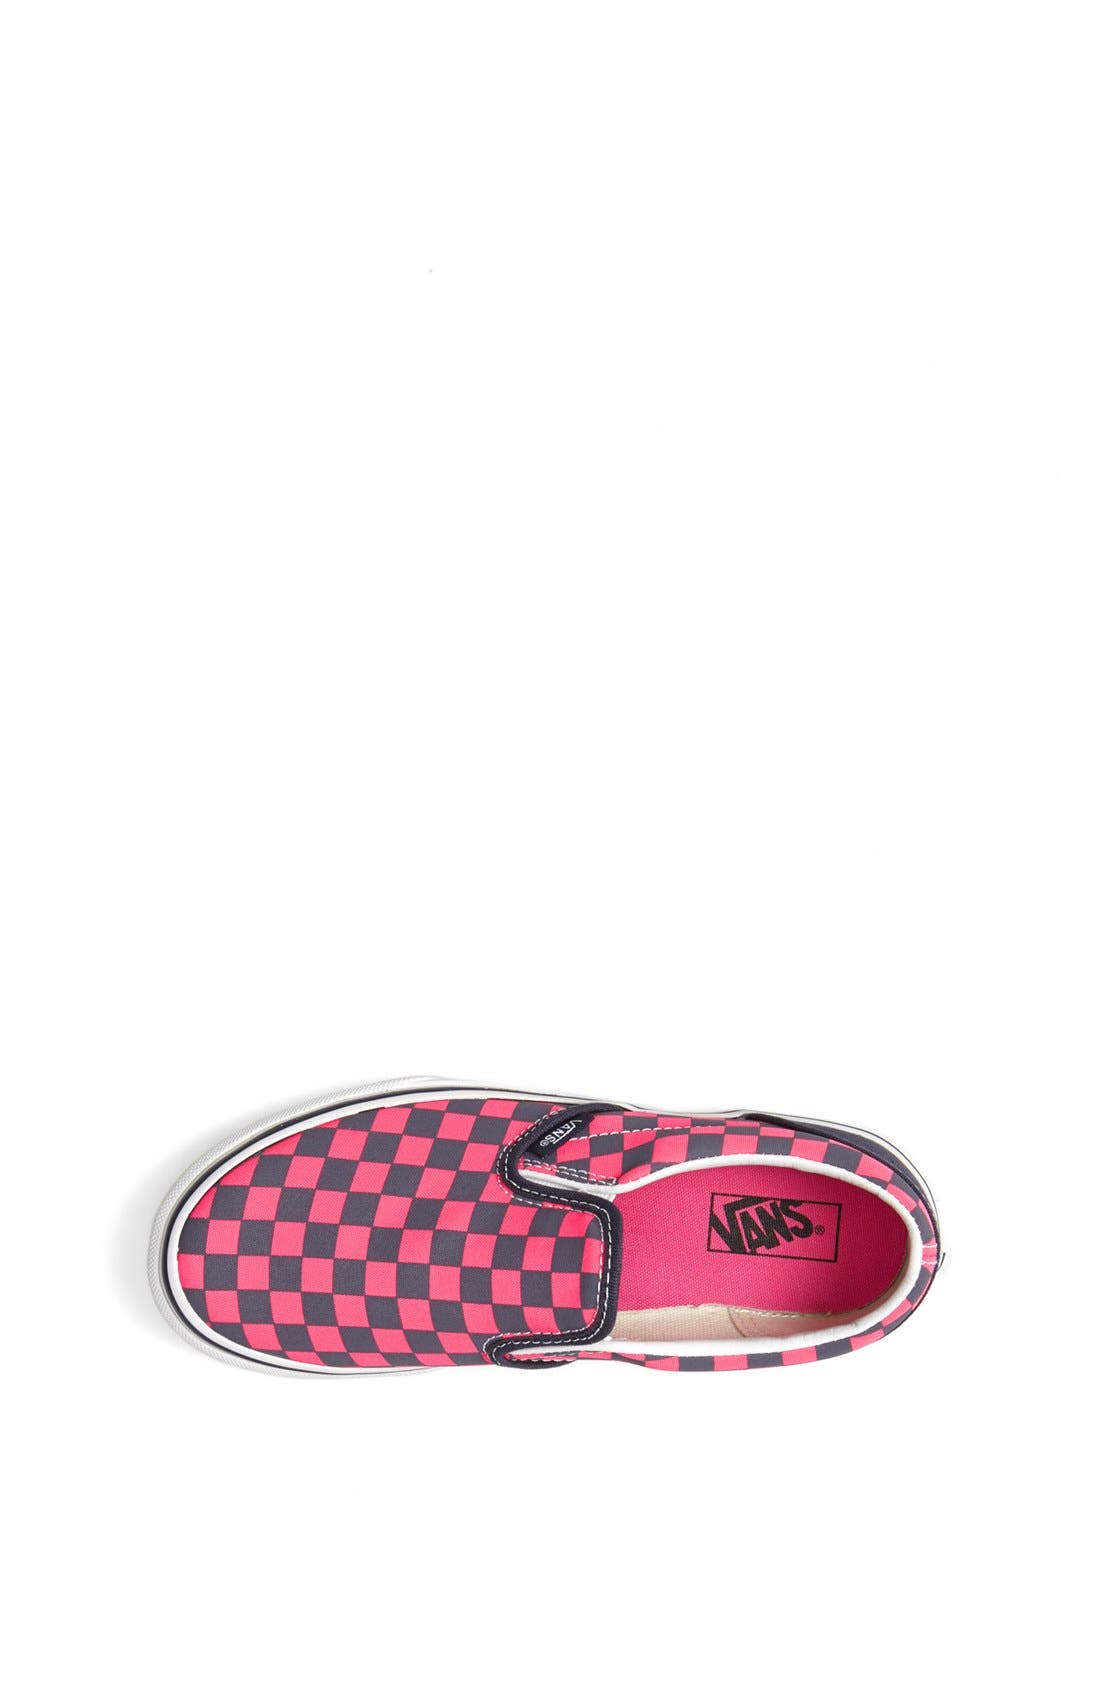 Alternate Image 3  - VANS CLASSIC SLIP ON CHECKERBOARD SNEAKER